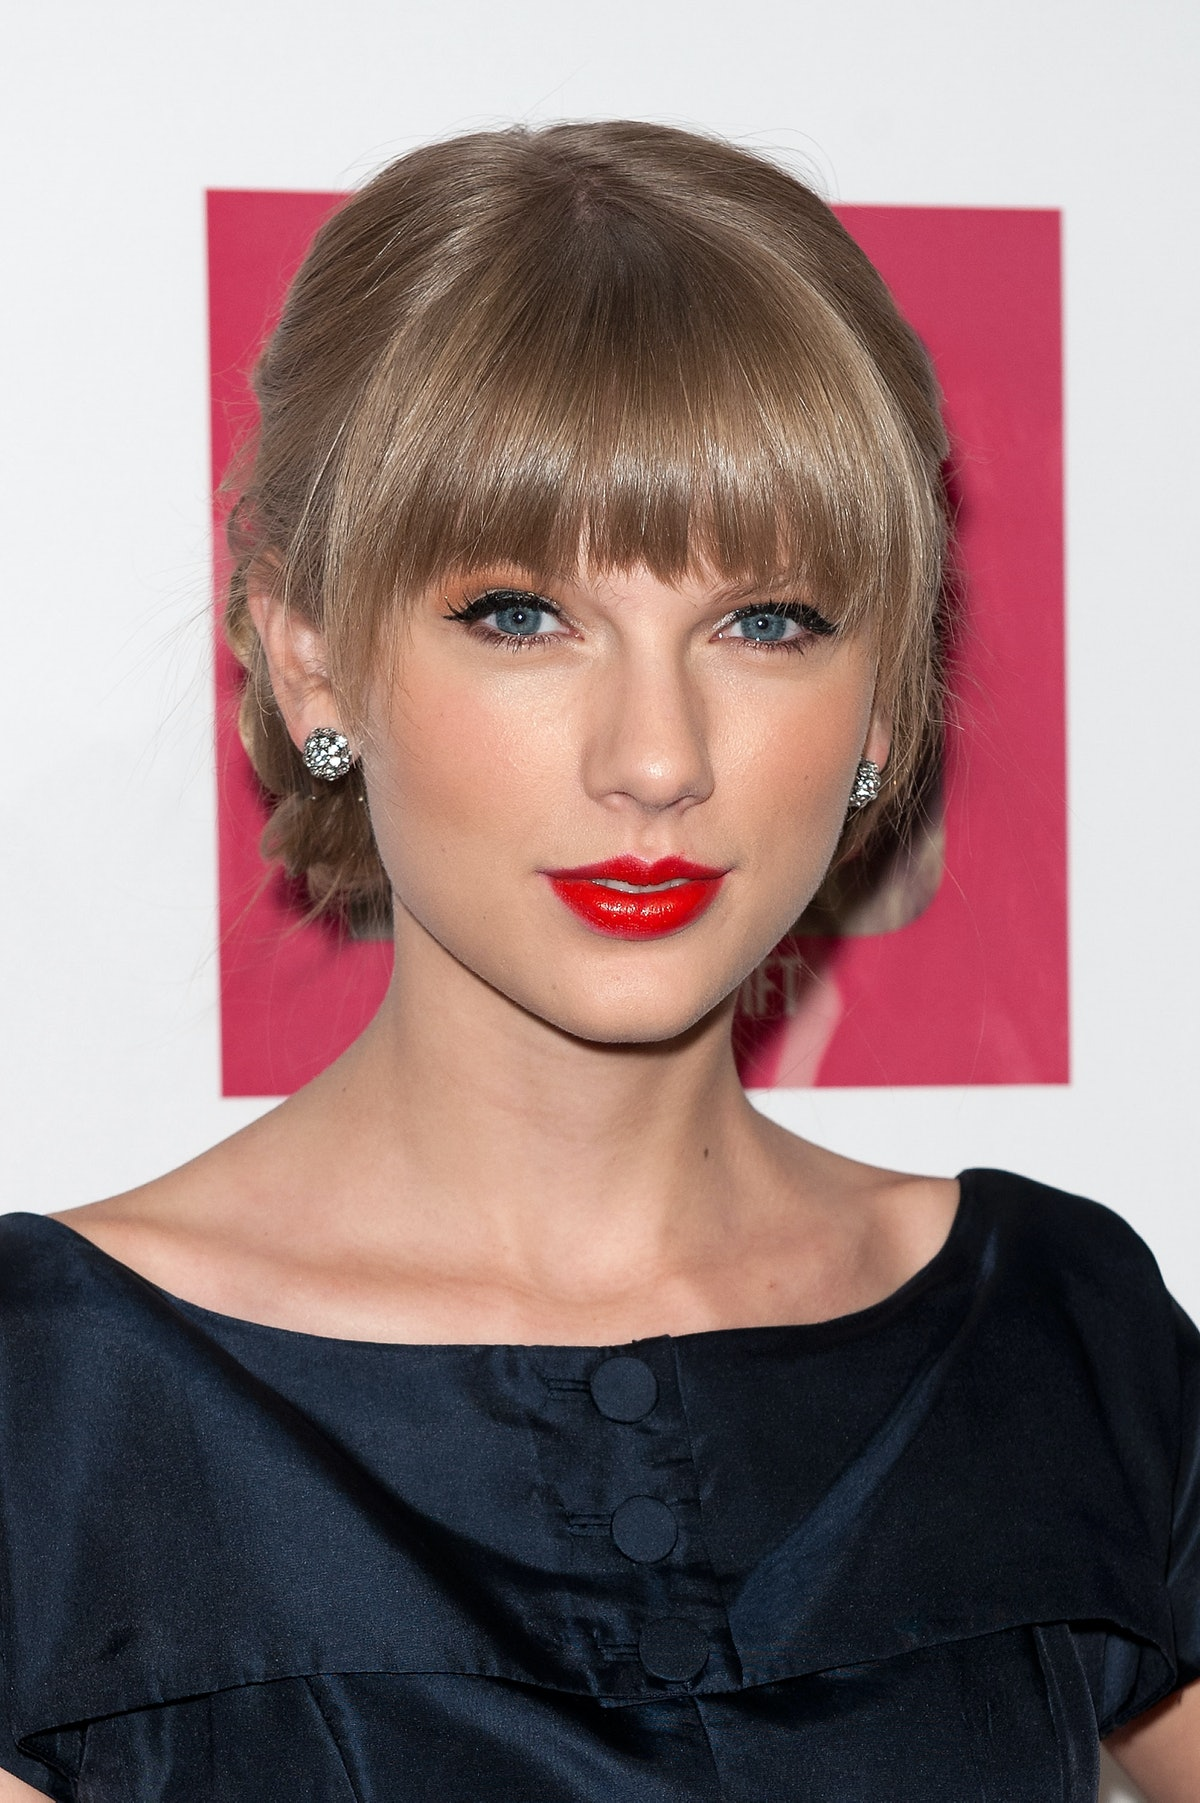 Taylor Swift's 'Red' re-release is coming, so here are the details like release date, new songs coming, and more.